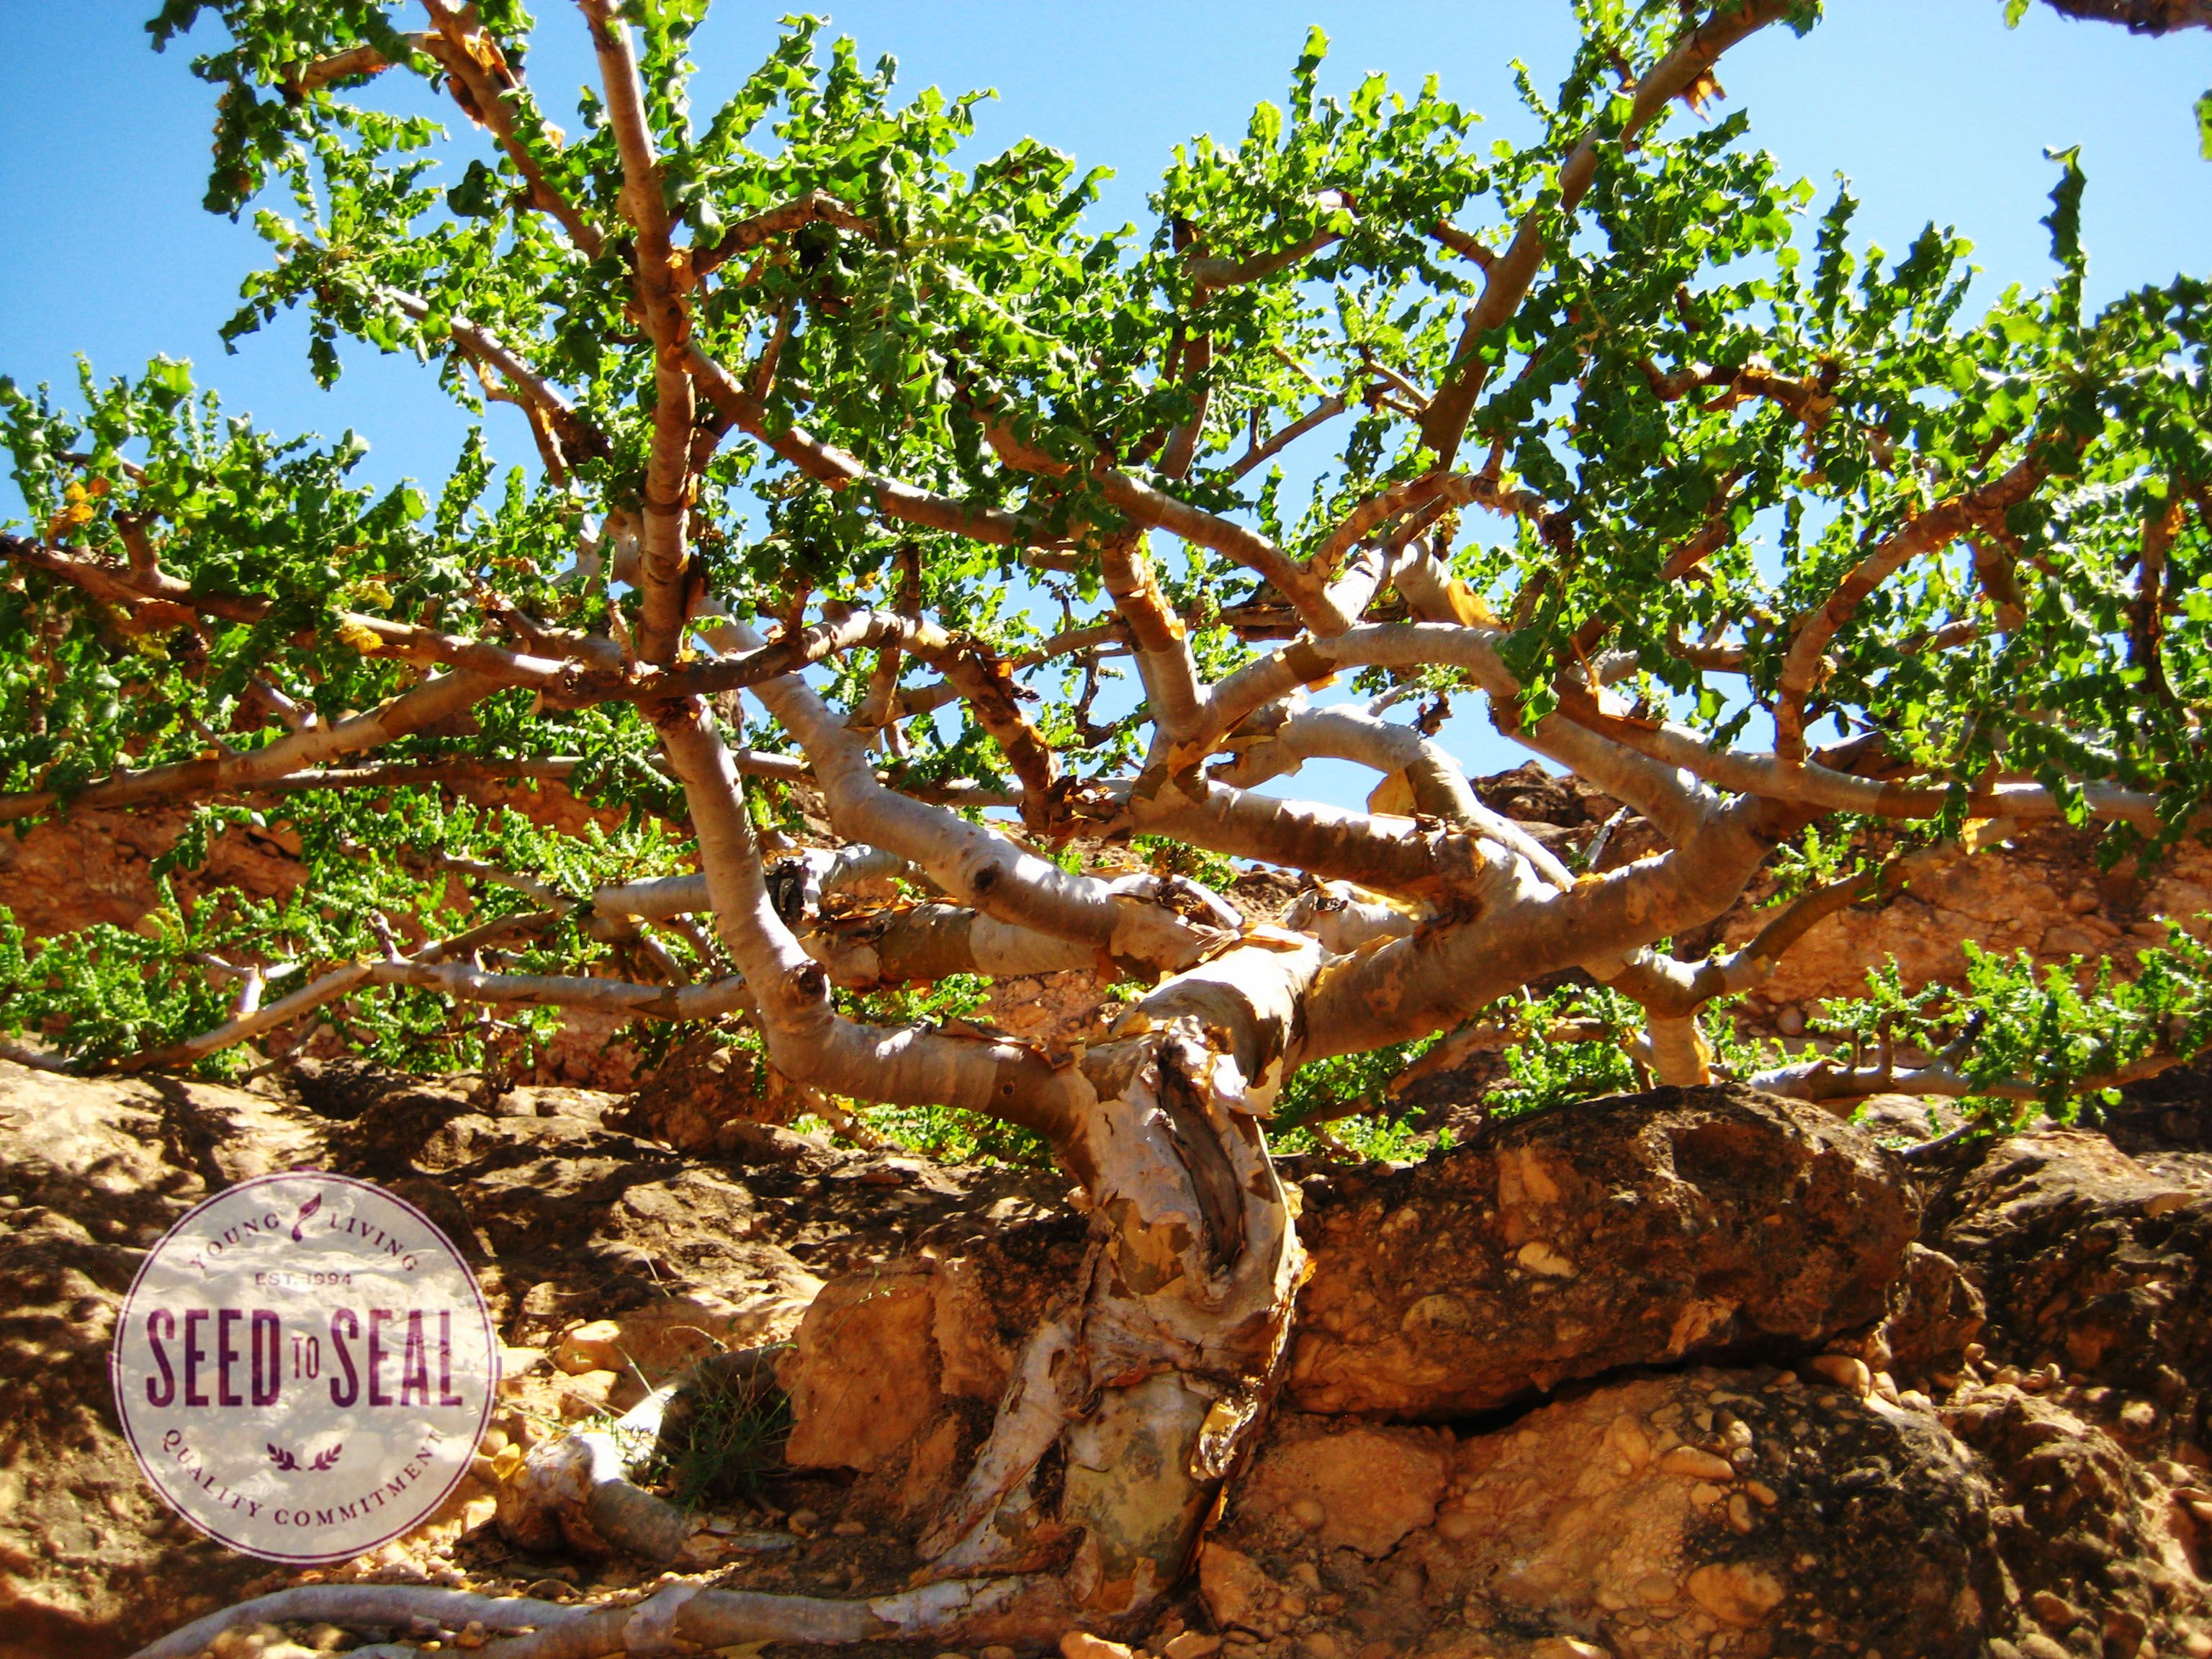 Pin on Frankincense - Young Living Co-op Oman Farm